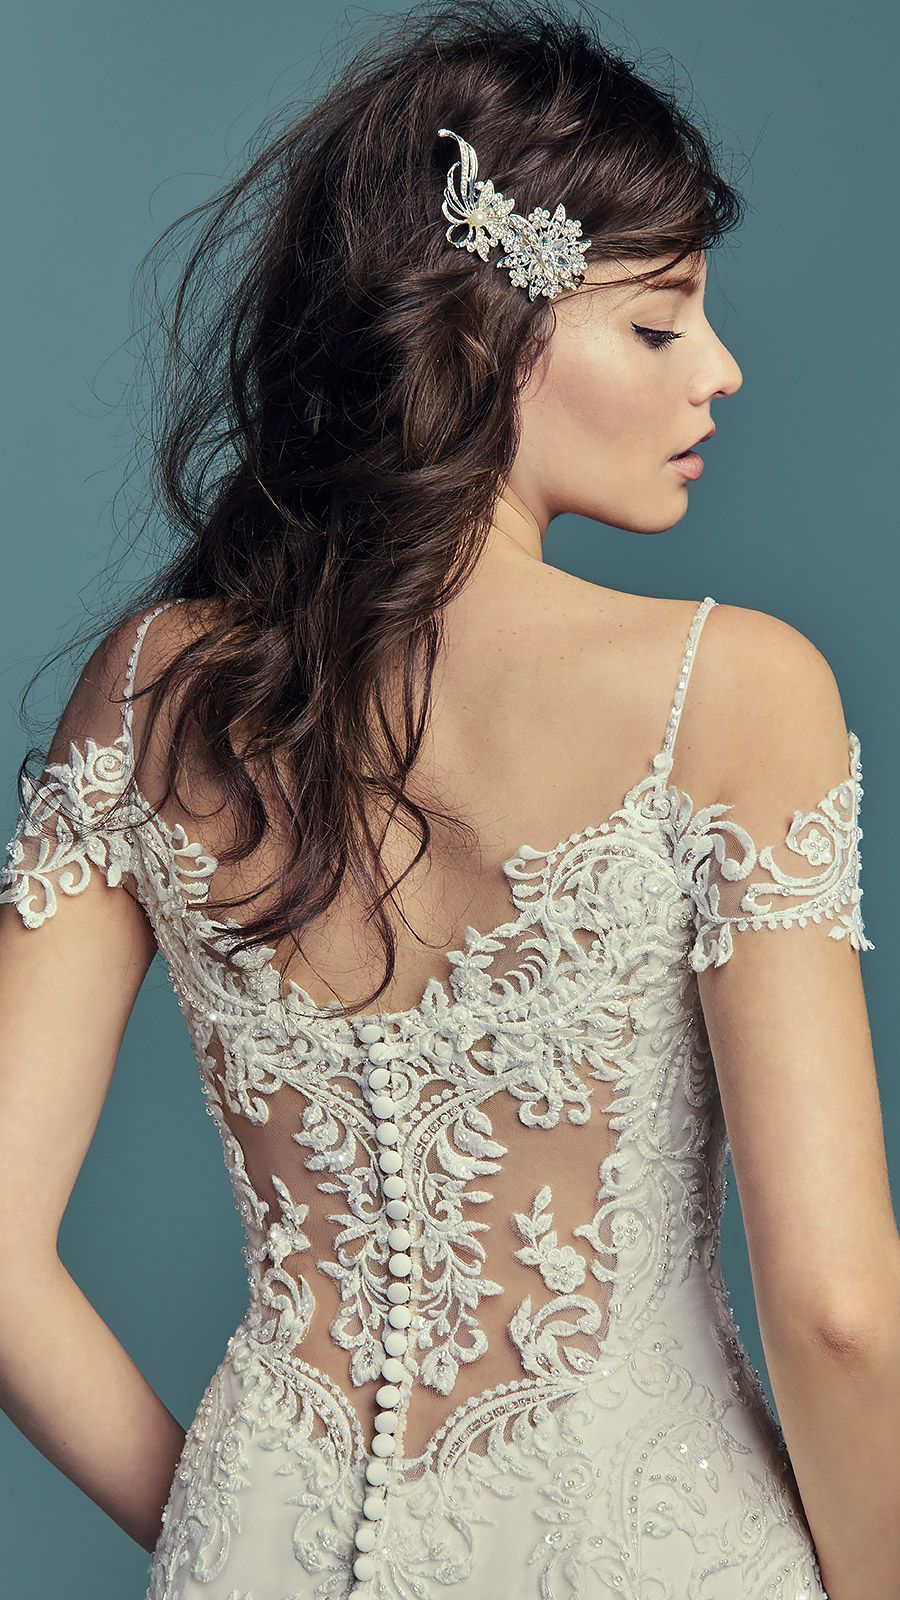 b5113cde98d  Ad Maggie Sottero wedding dress DELLA. This stunning fit-and-flare bridal  gown features beaded straps